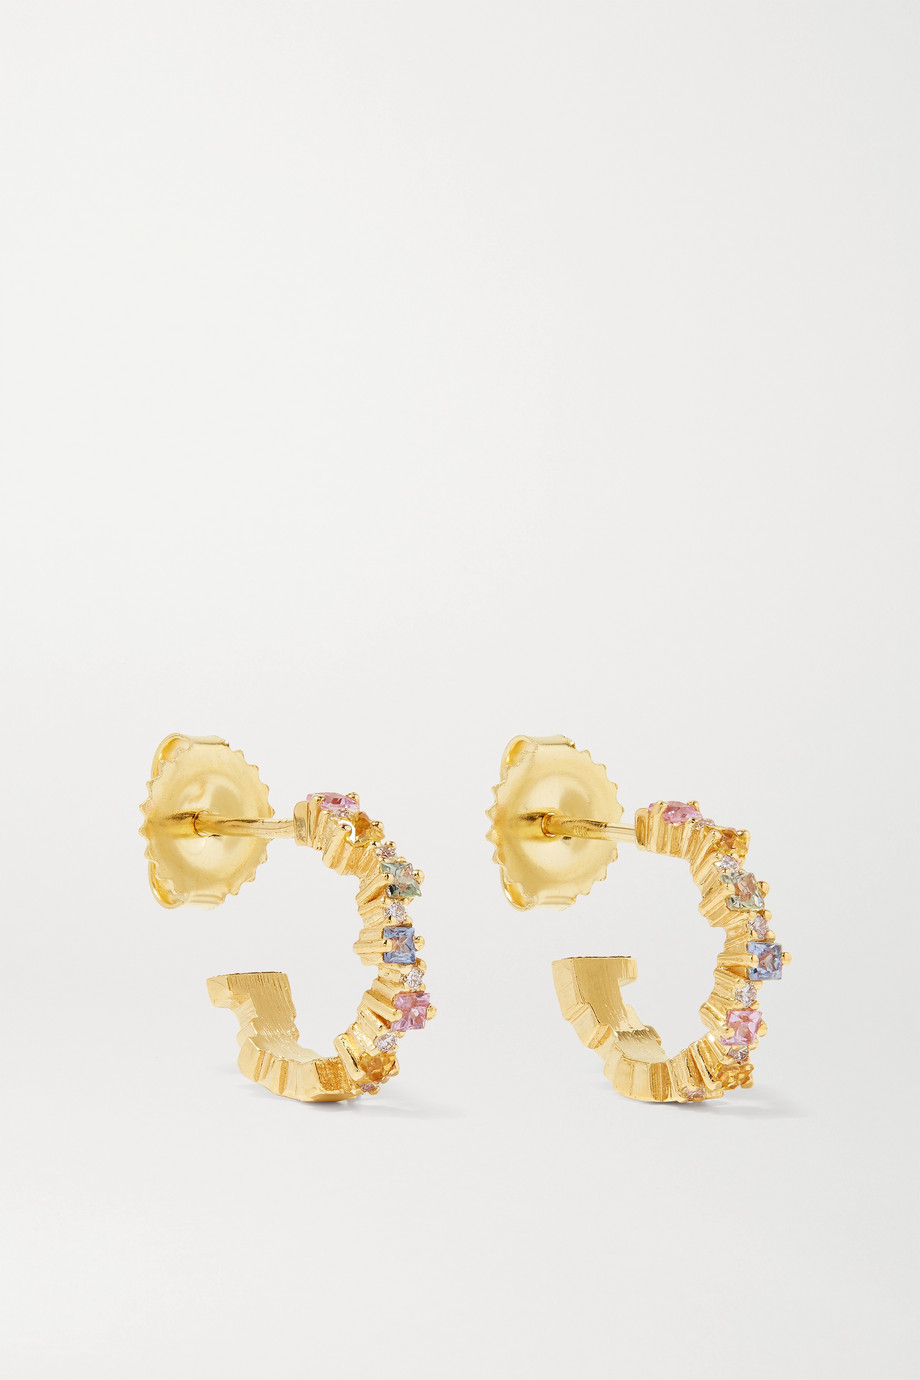 SUZANNE KALAN 18-karat gold, sapphire and diamond hoop earrings